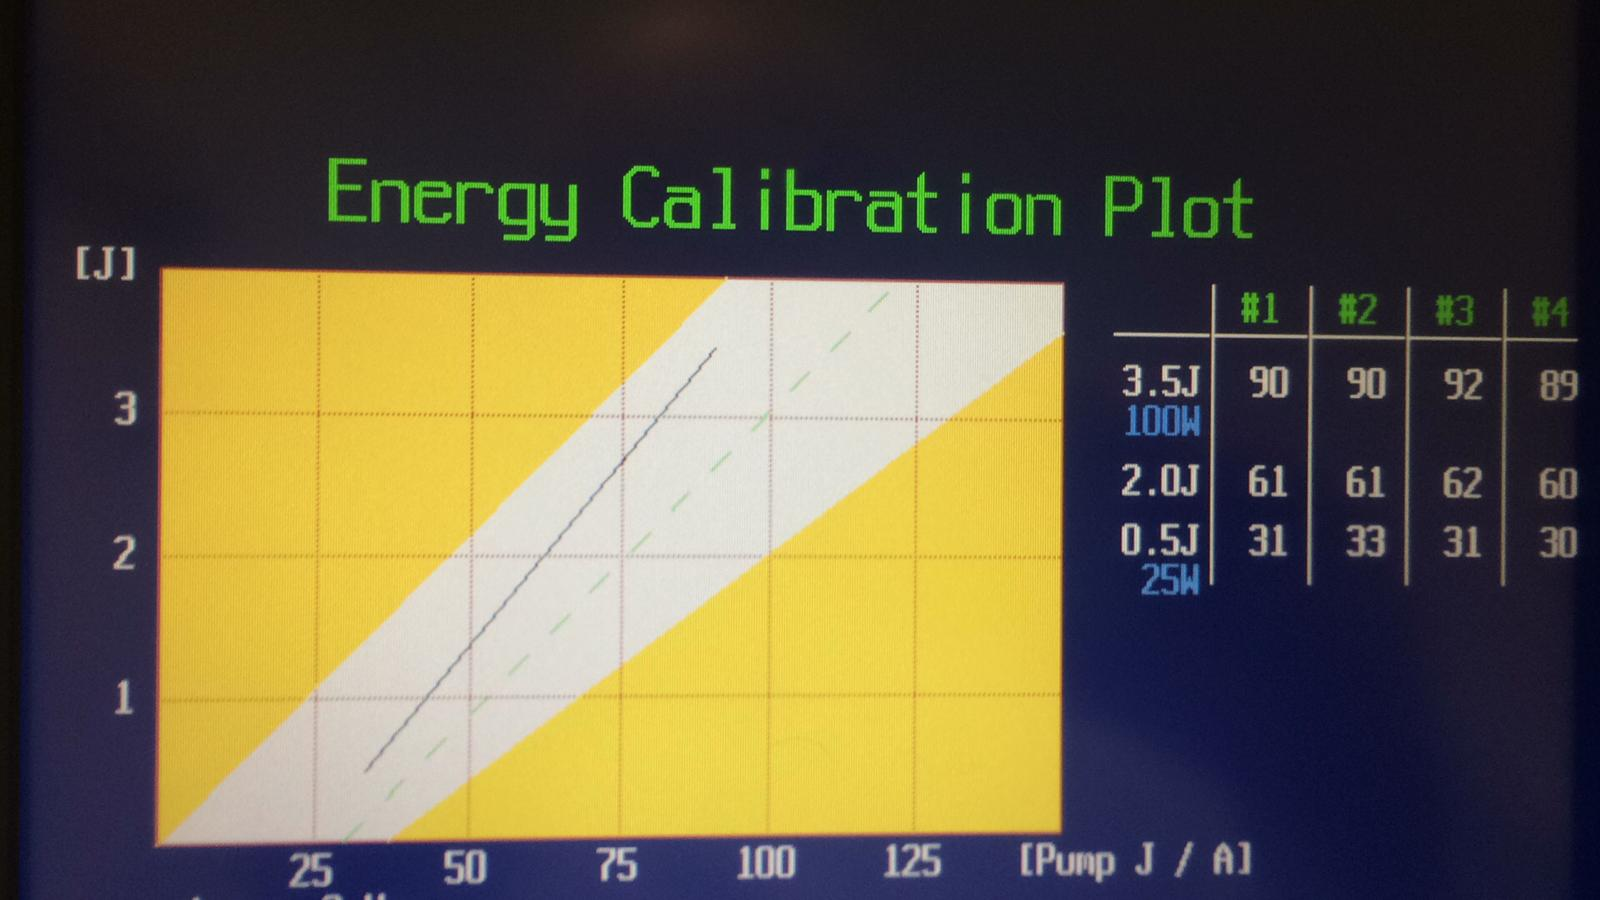 Energy Calibration Plot